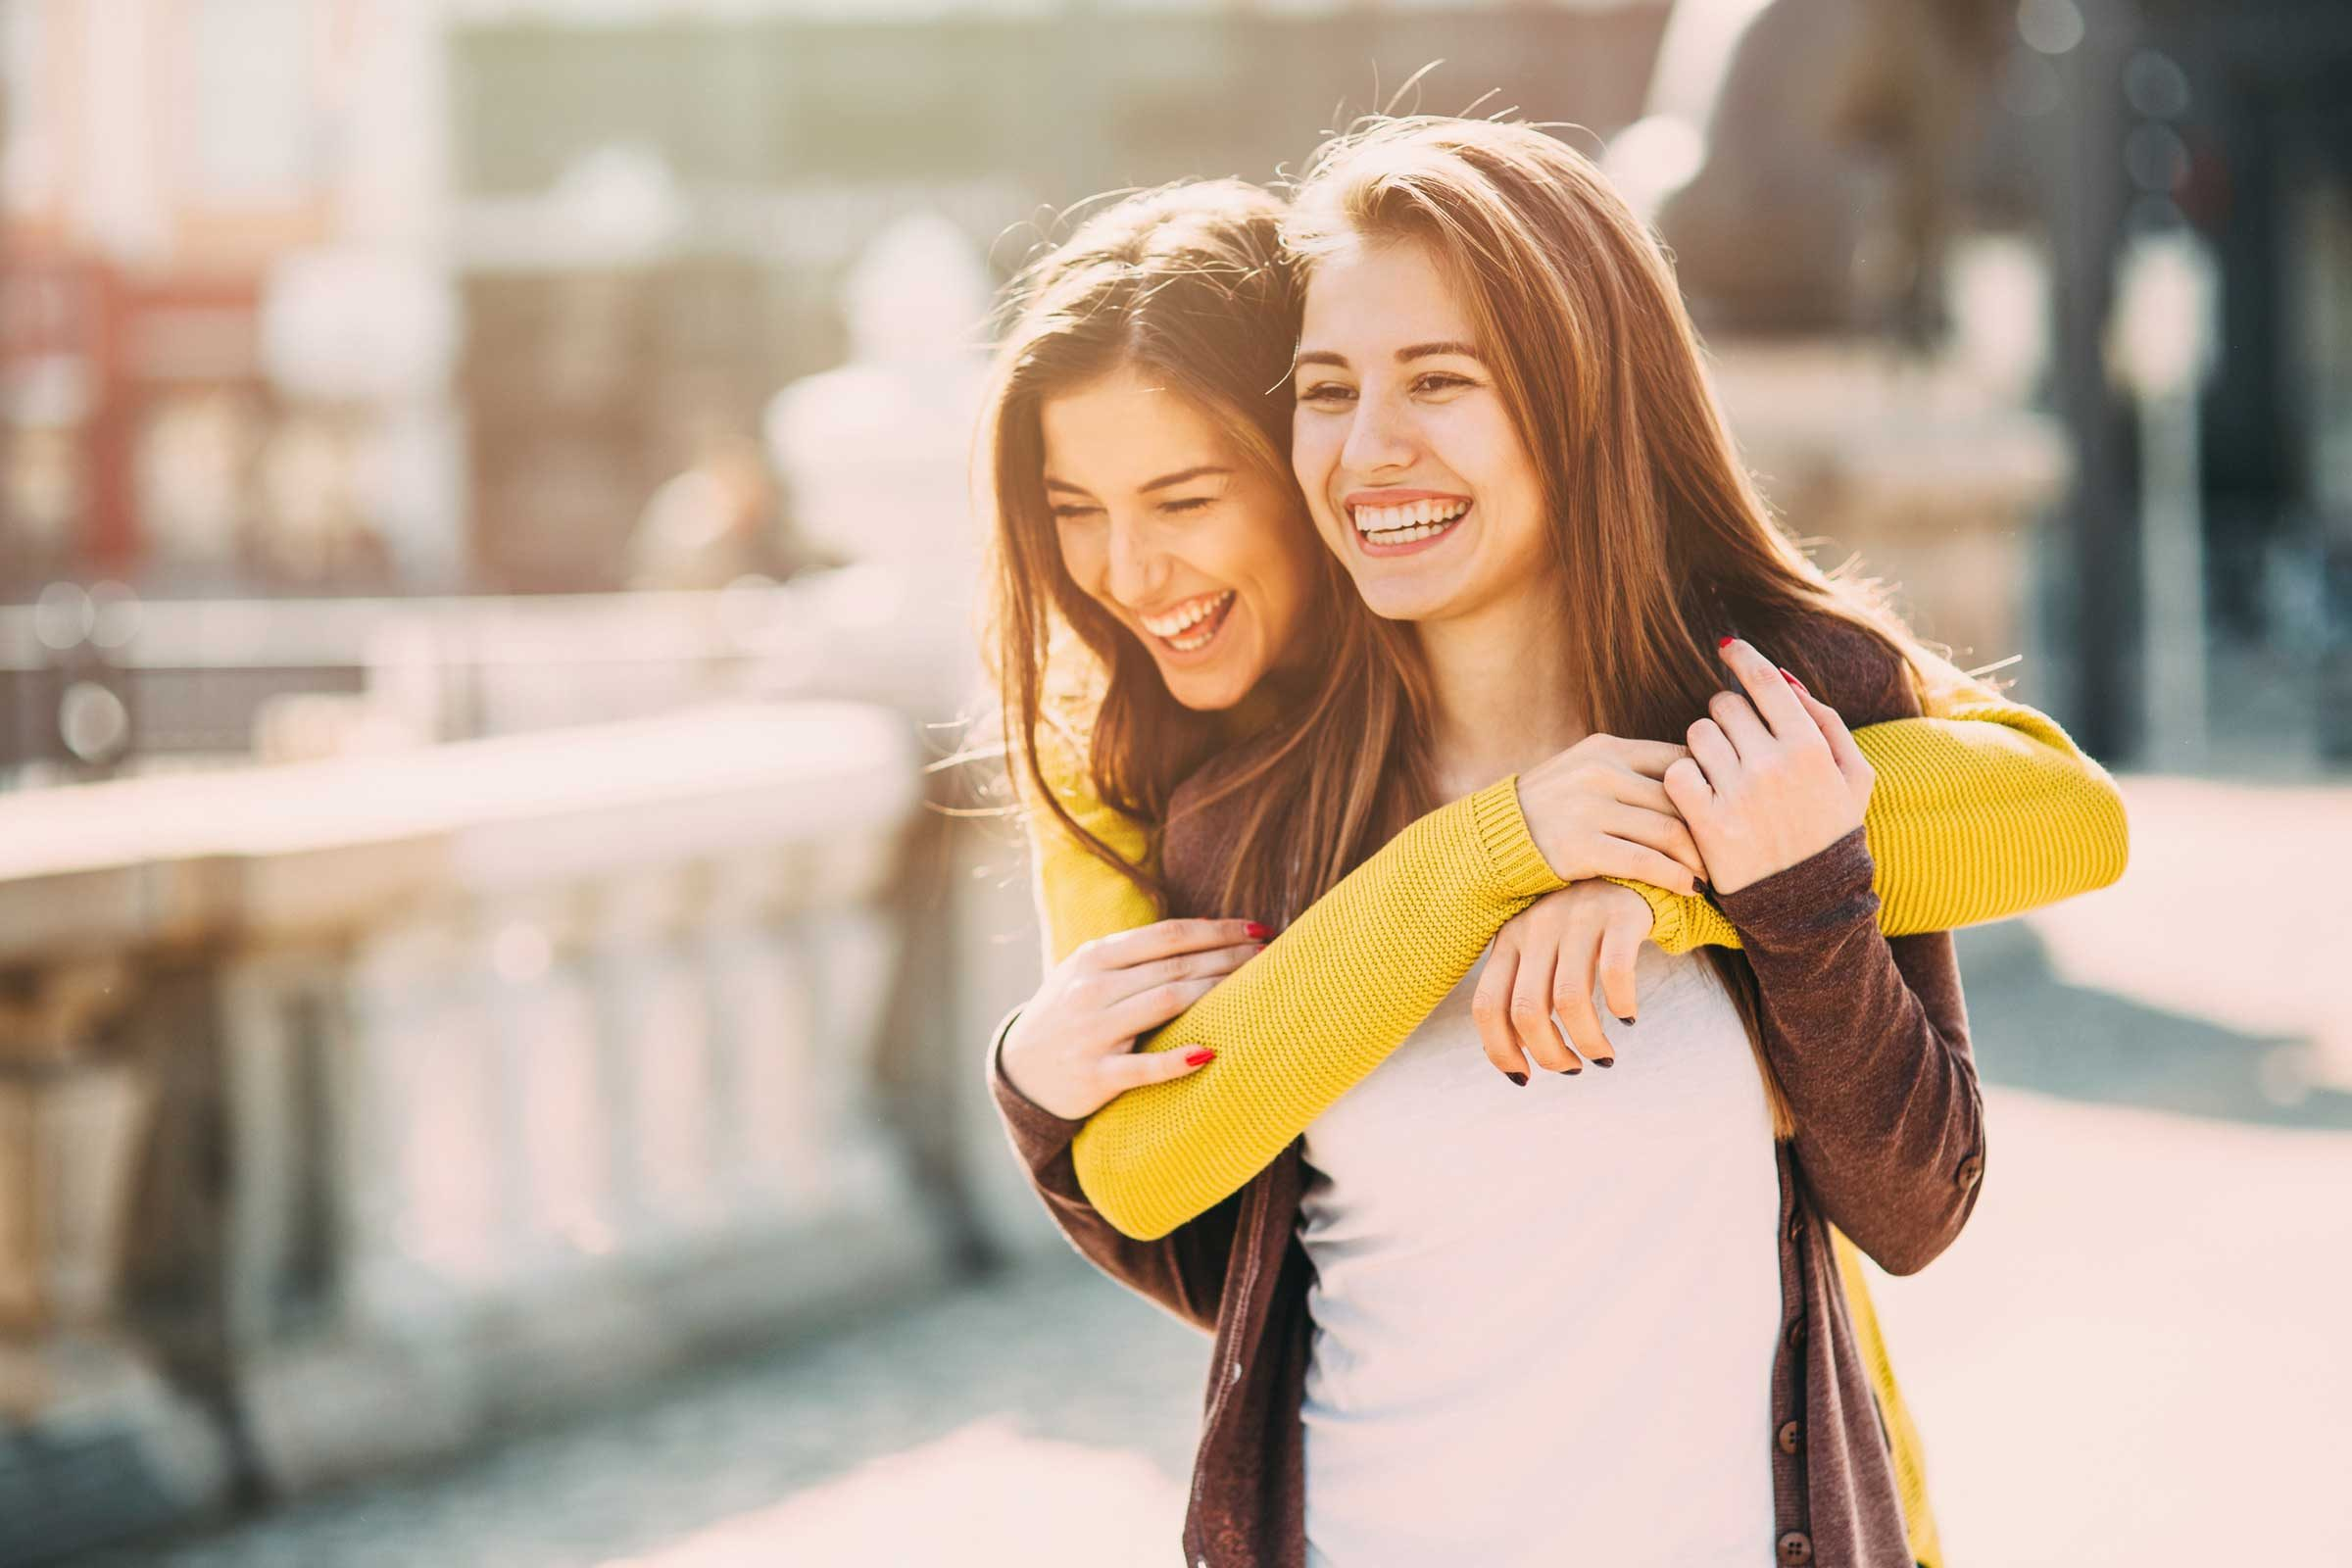 Best Friends Every Adult Woman Should Have